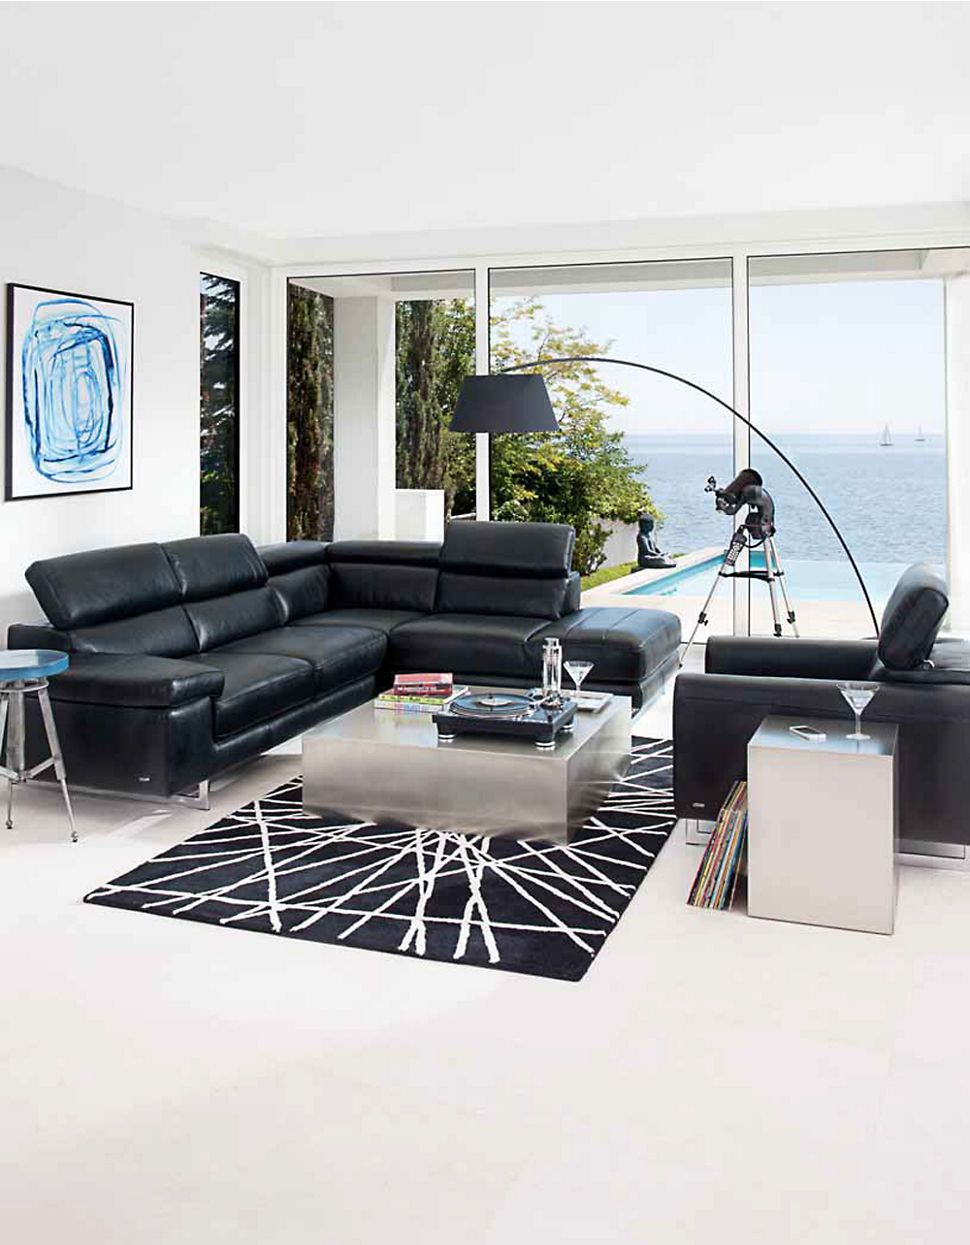 Natuzzi Couchtisch Glas Umbria Sectional Sofa By Natuzzi Editions Hudson S Bay House